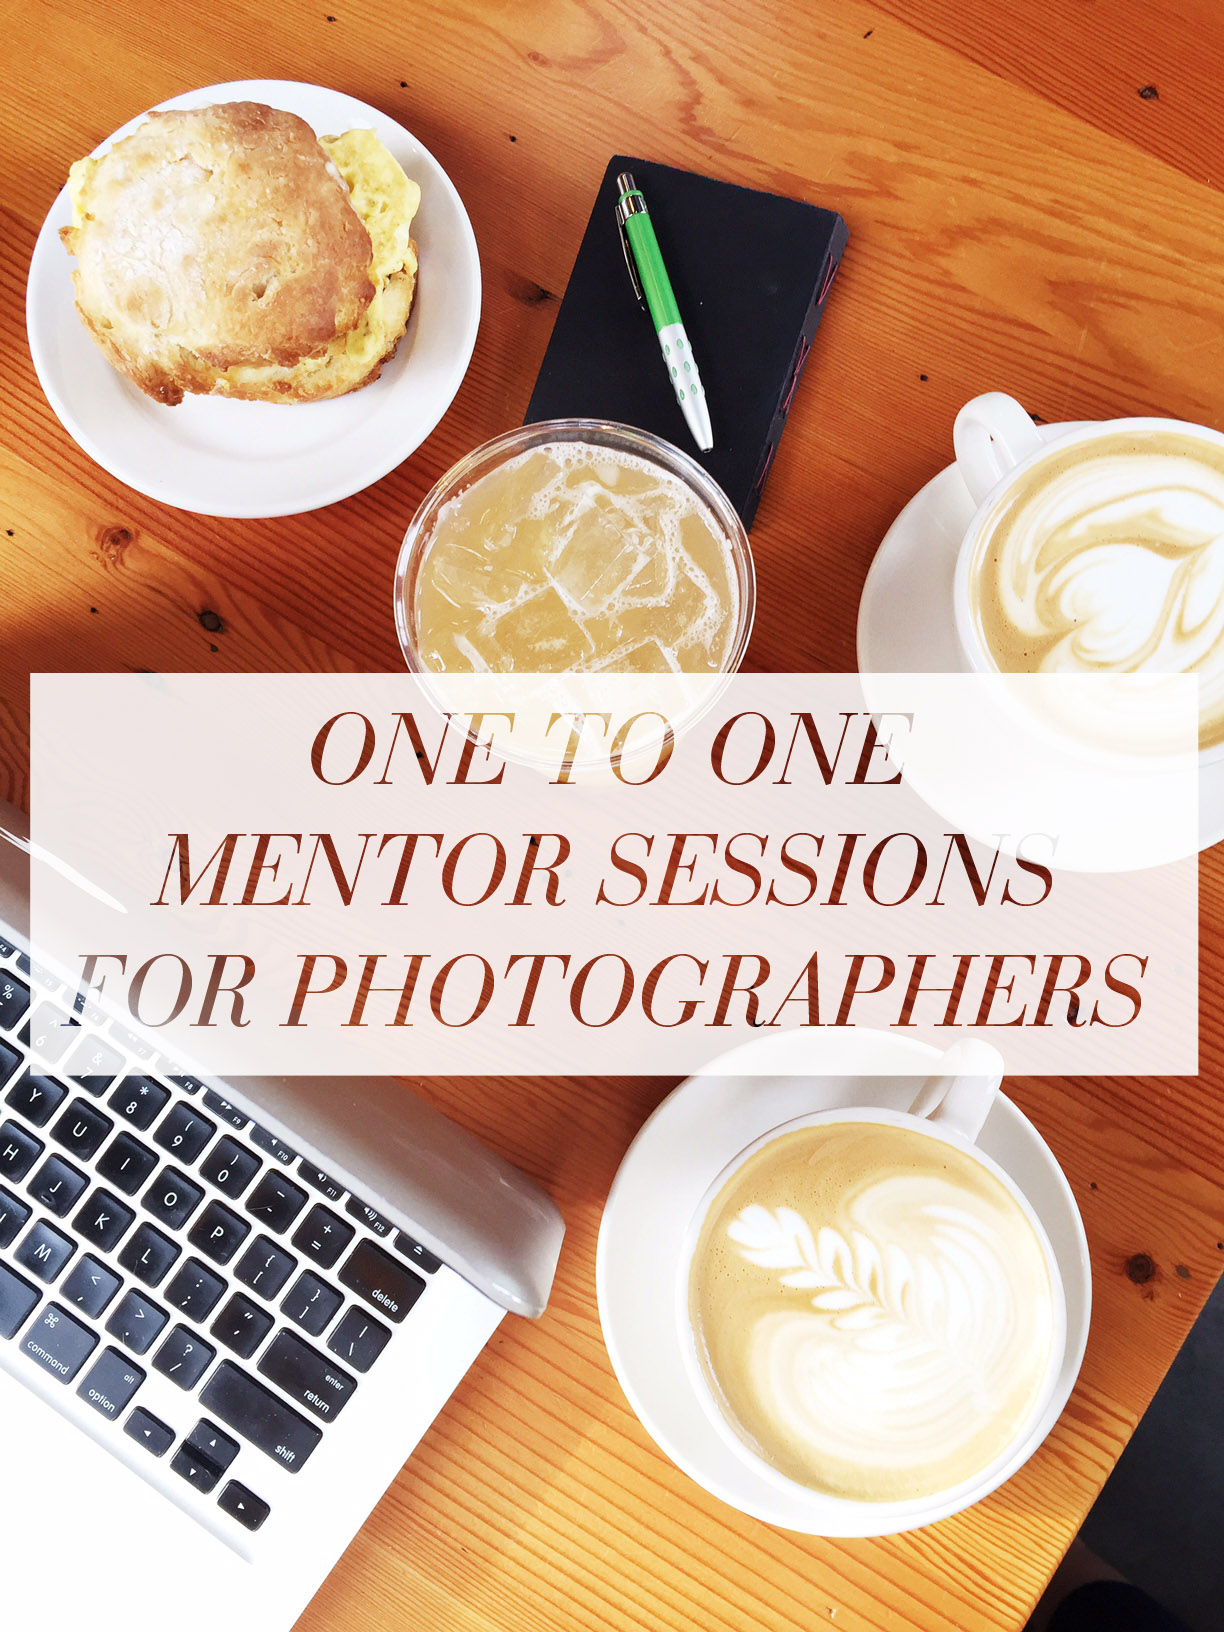 Portland Oregon Film Photographer, Lexia Frank, offers Mentor Sessions for Photographers in person or online.